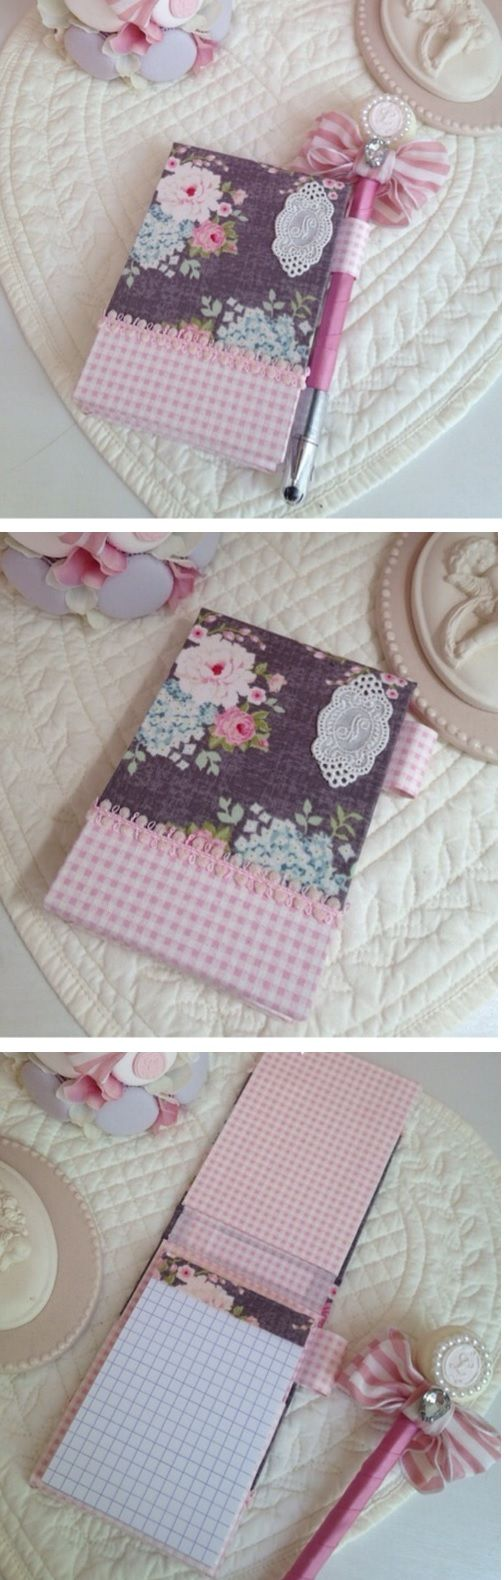 Neat idea for notebook and pen set. :)